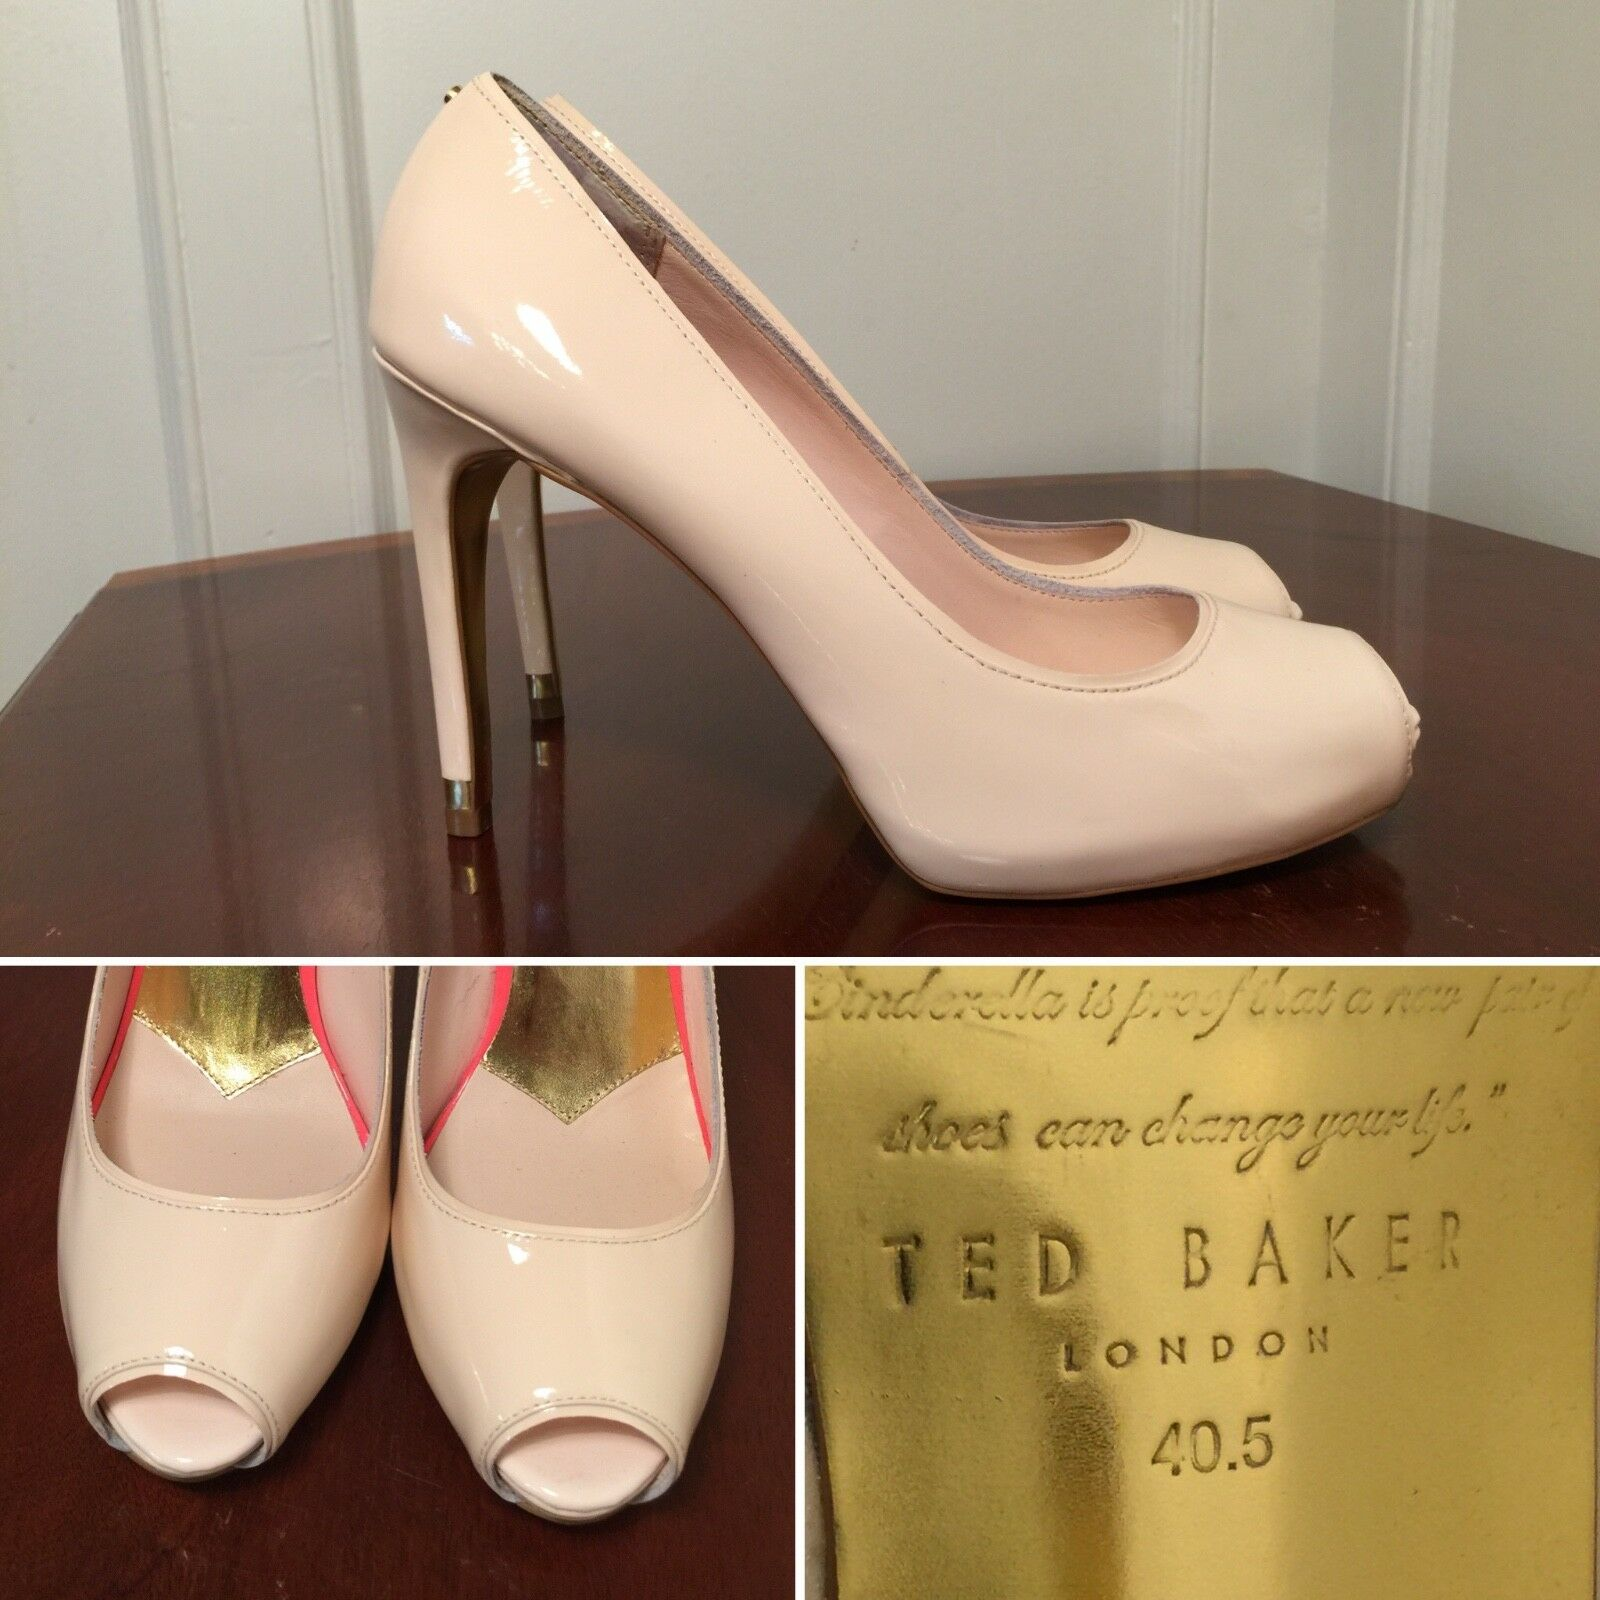 New TED BAKER  Glister  Nude Patent Patent Patent Leather High Heel Peep-Toe Pumps US Size 9.5 8fc31a